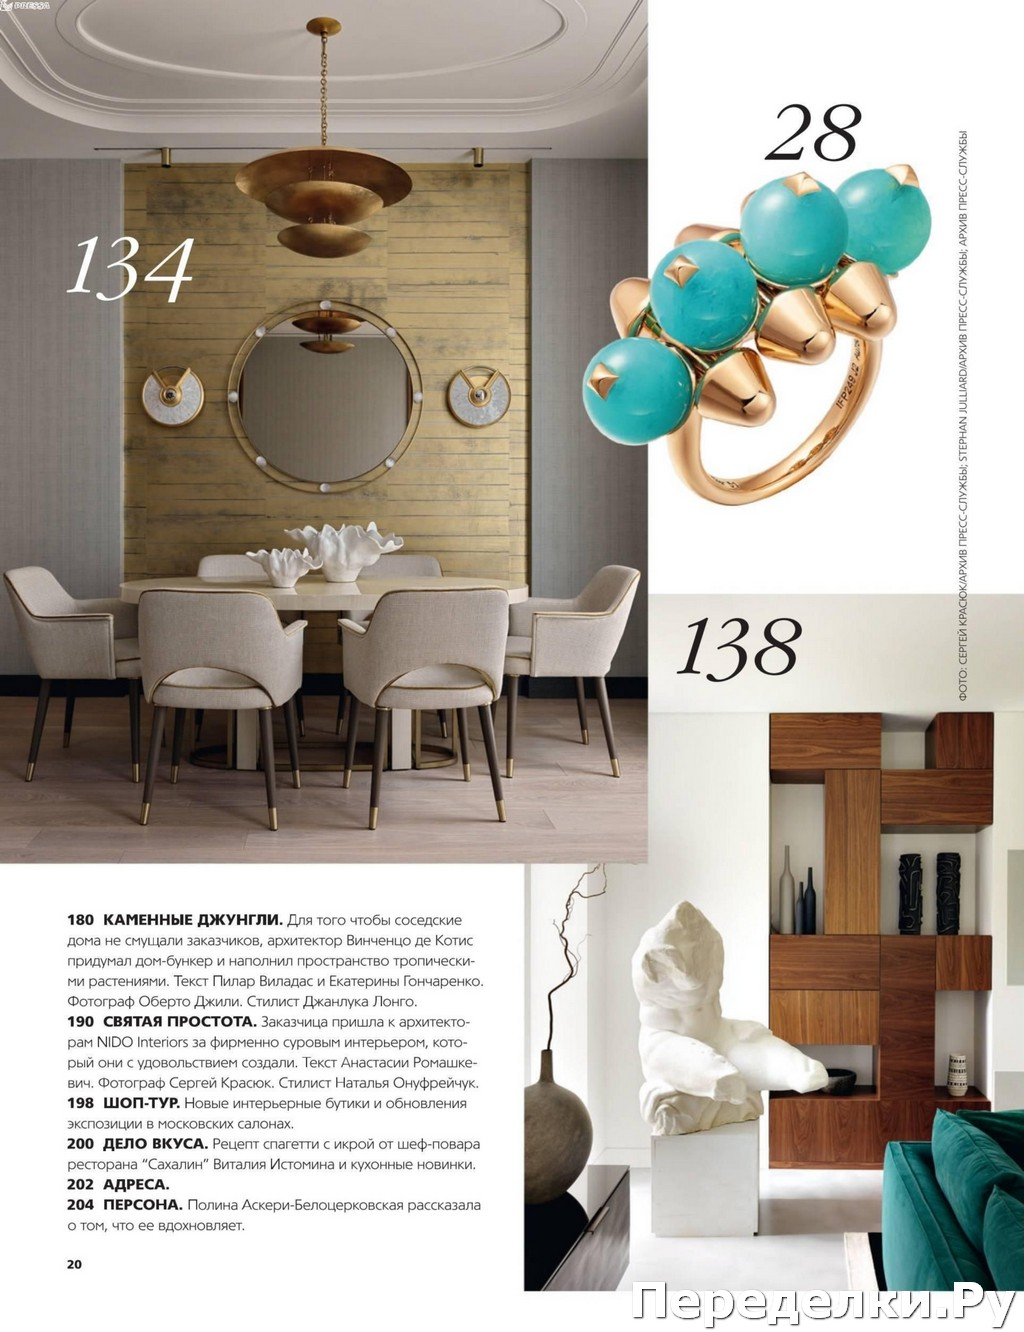 AD Architectural Digest 4 aprel 2020 20